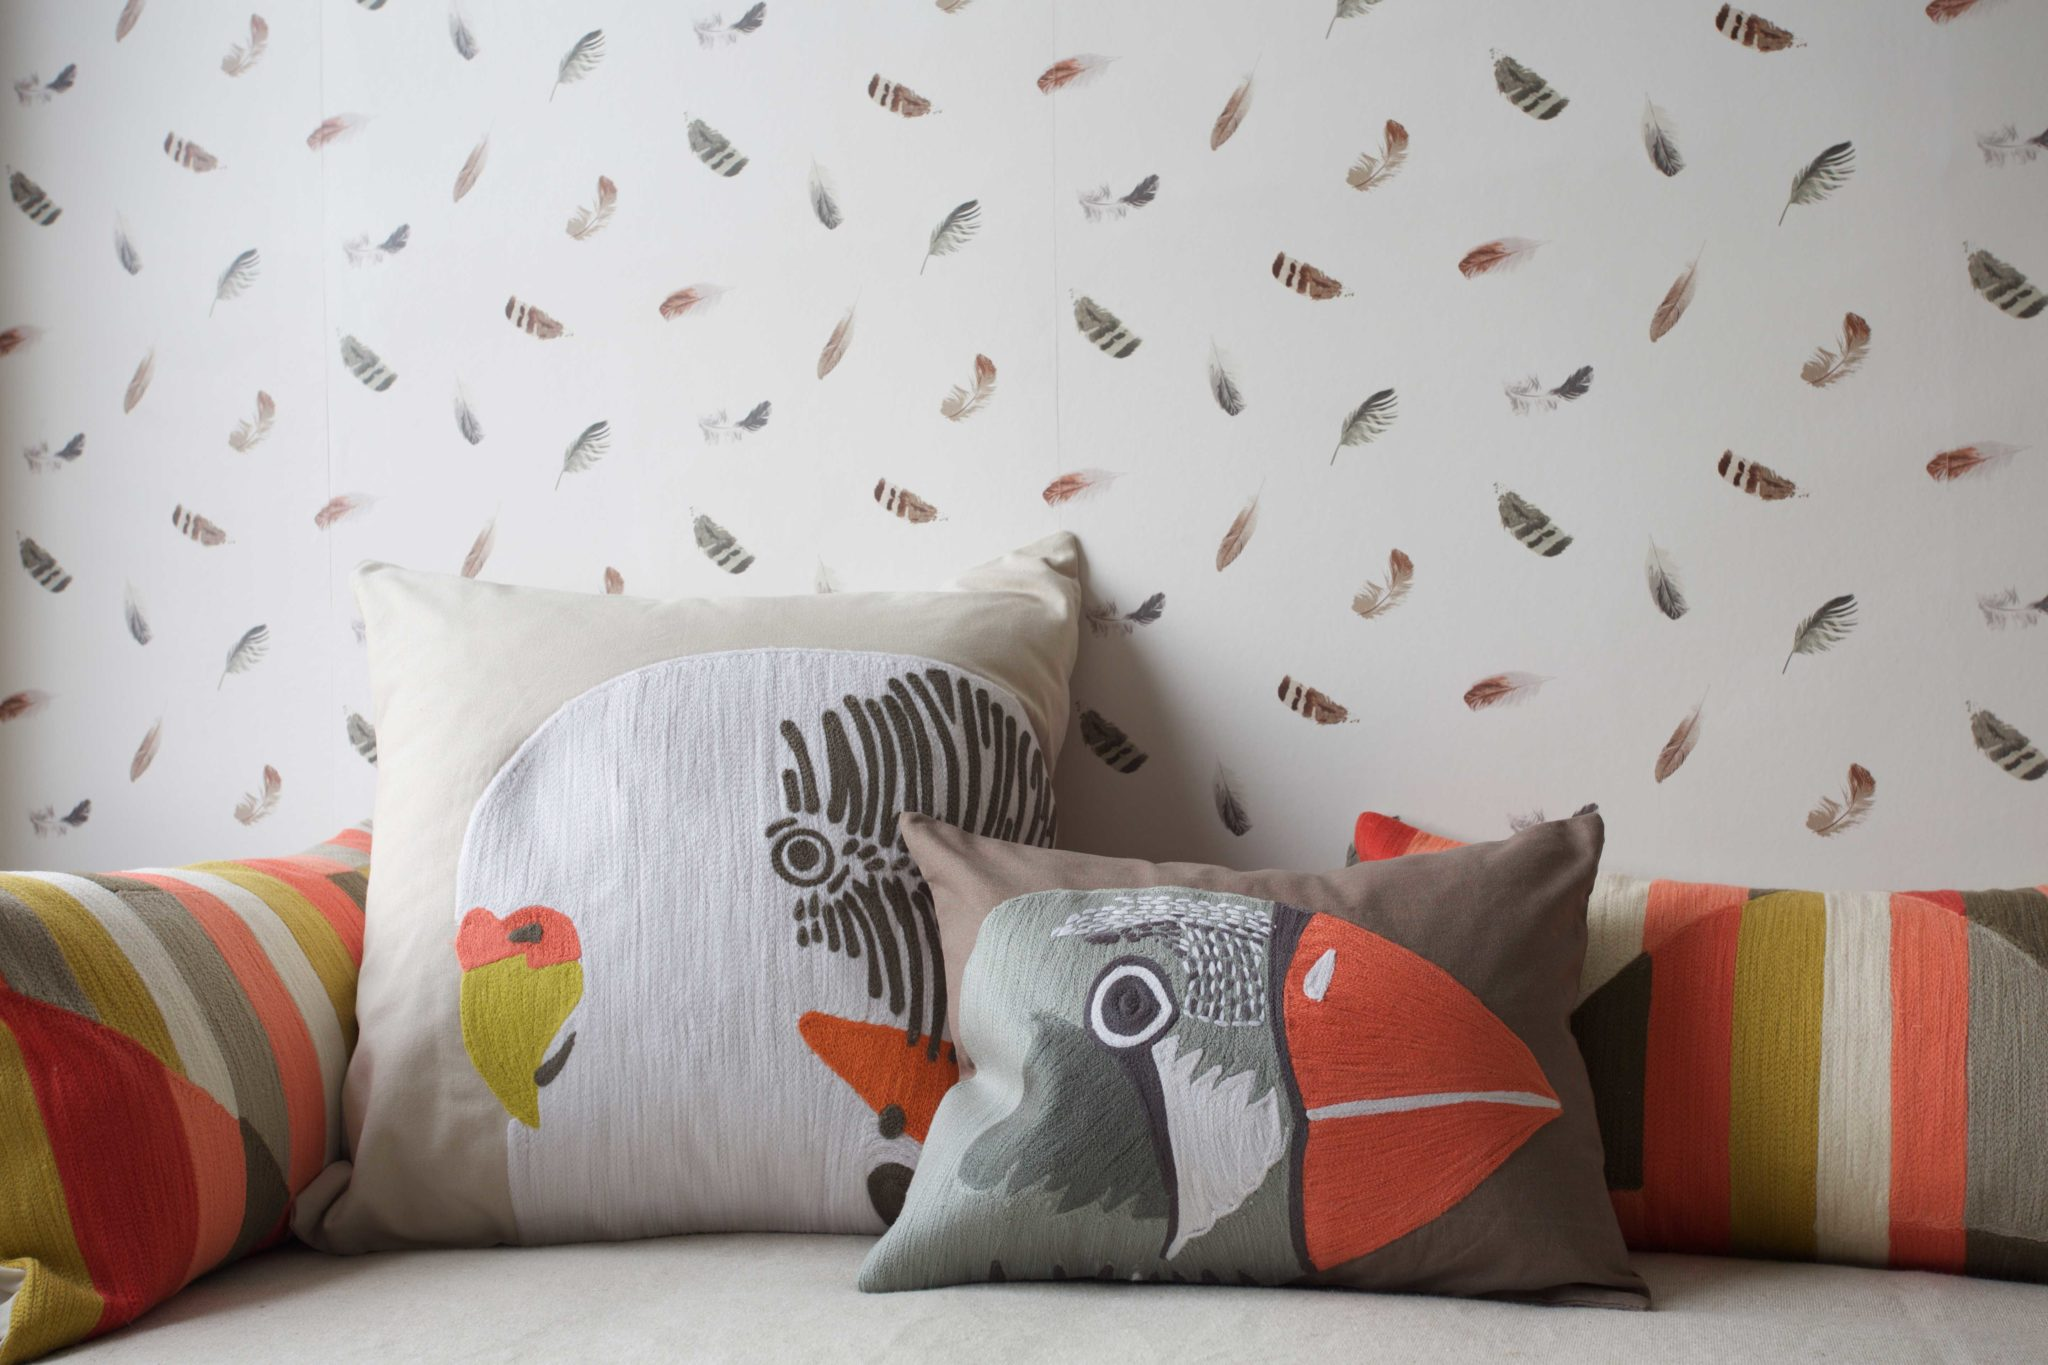 18. Cassidy_Hughes_Design_Cushion_Detail_Feather_Wallpaper_Bed